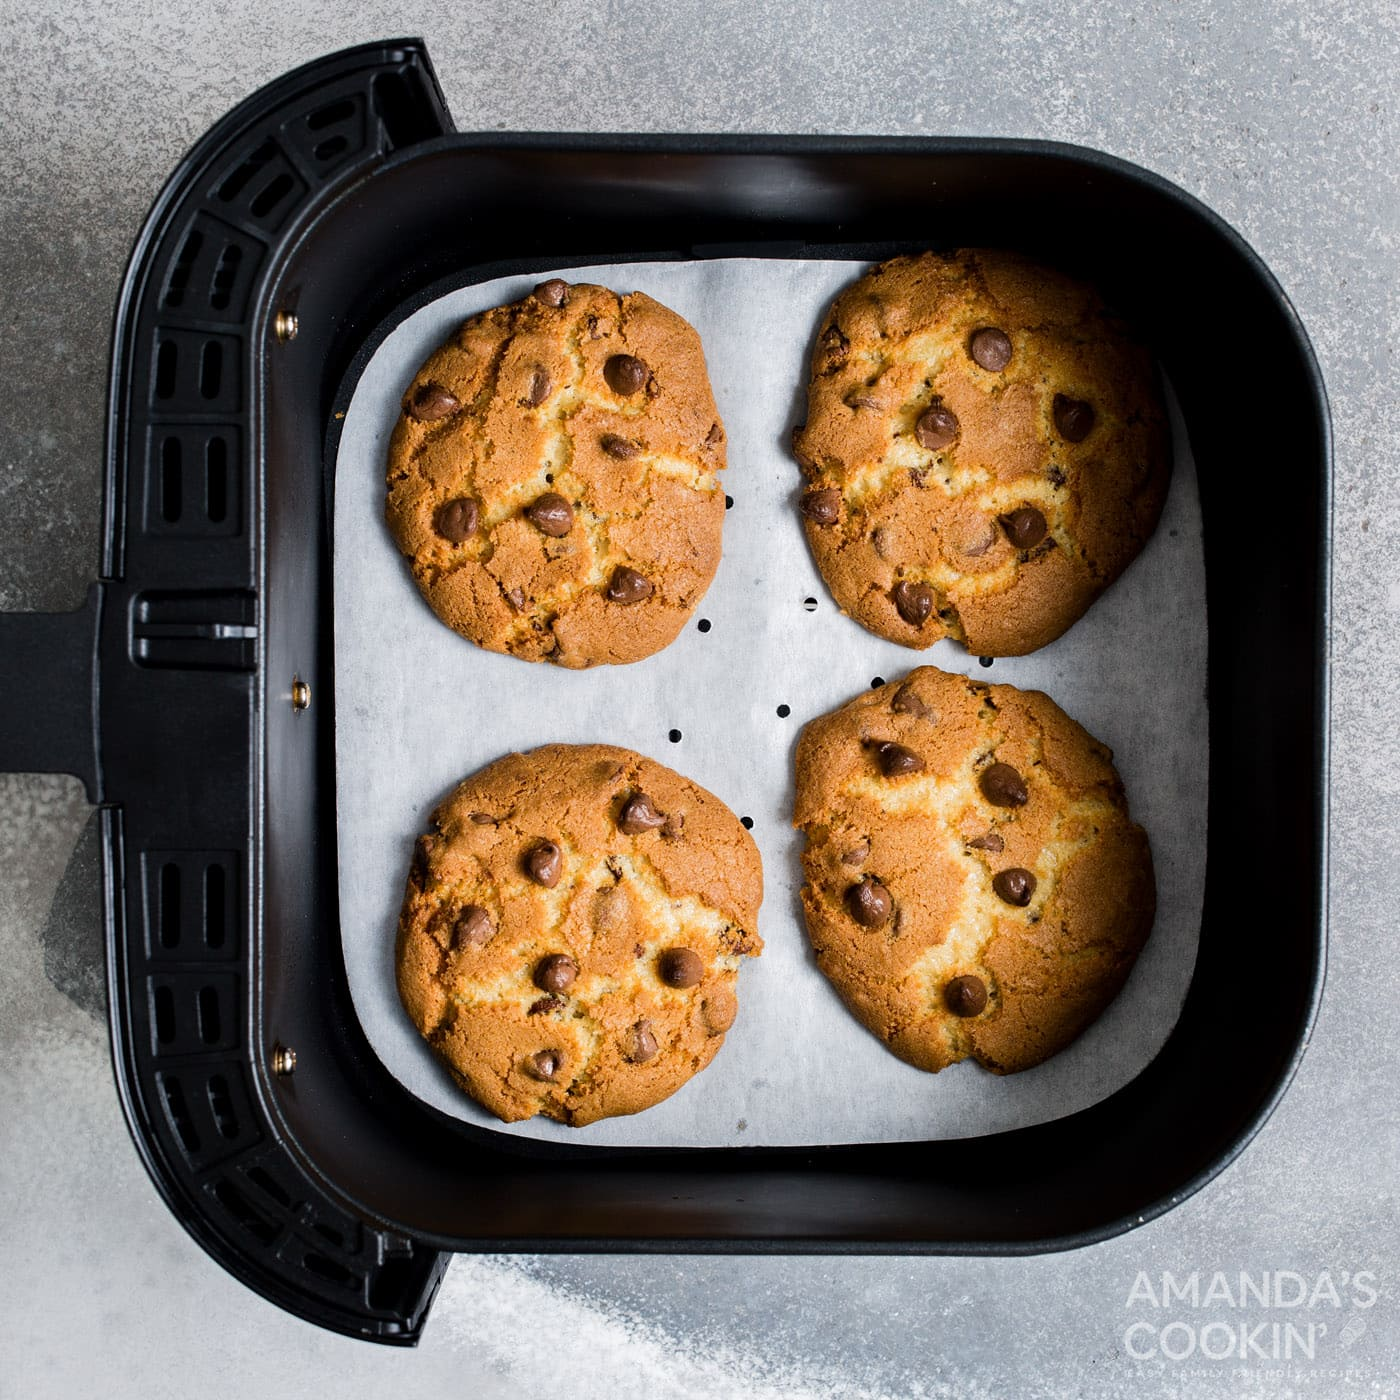 chocolate chip cookies in the air fryer